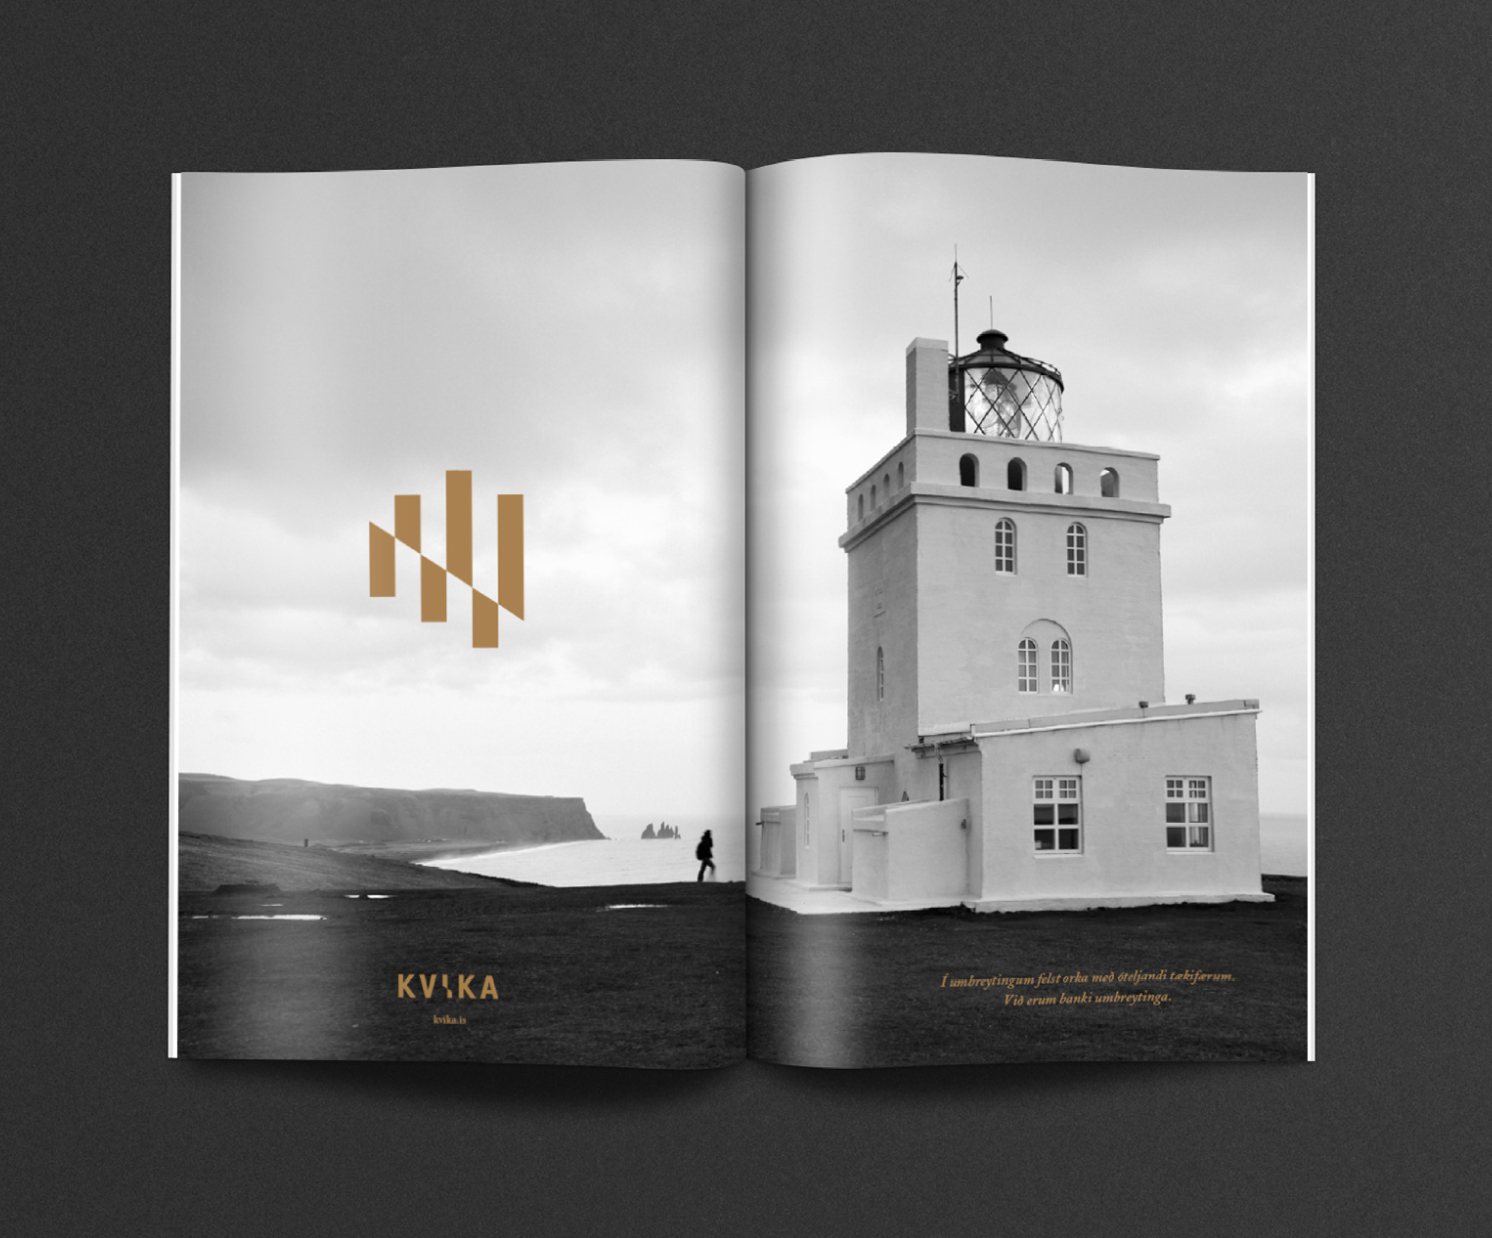 Kvika Investment bank - Branding / Interiour / Landscapes